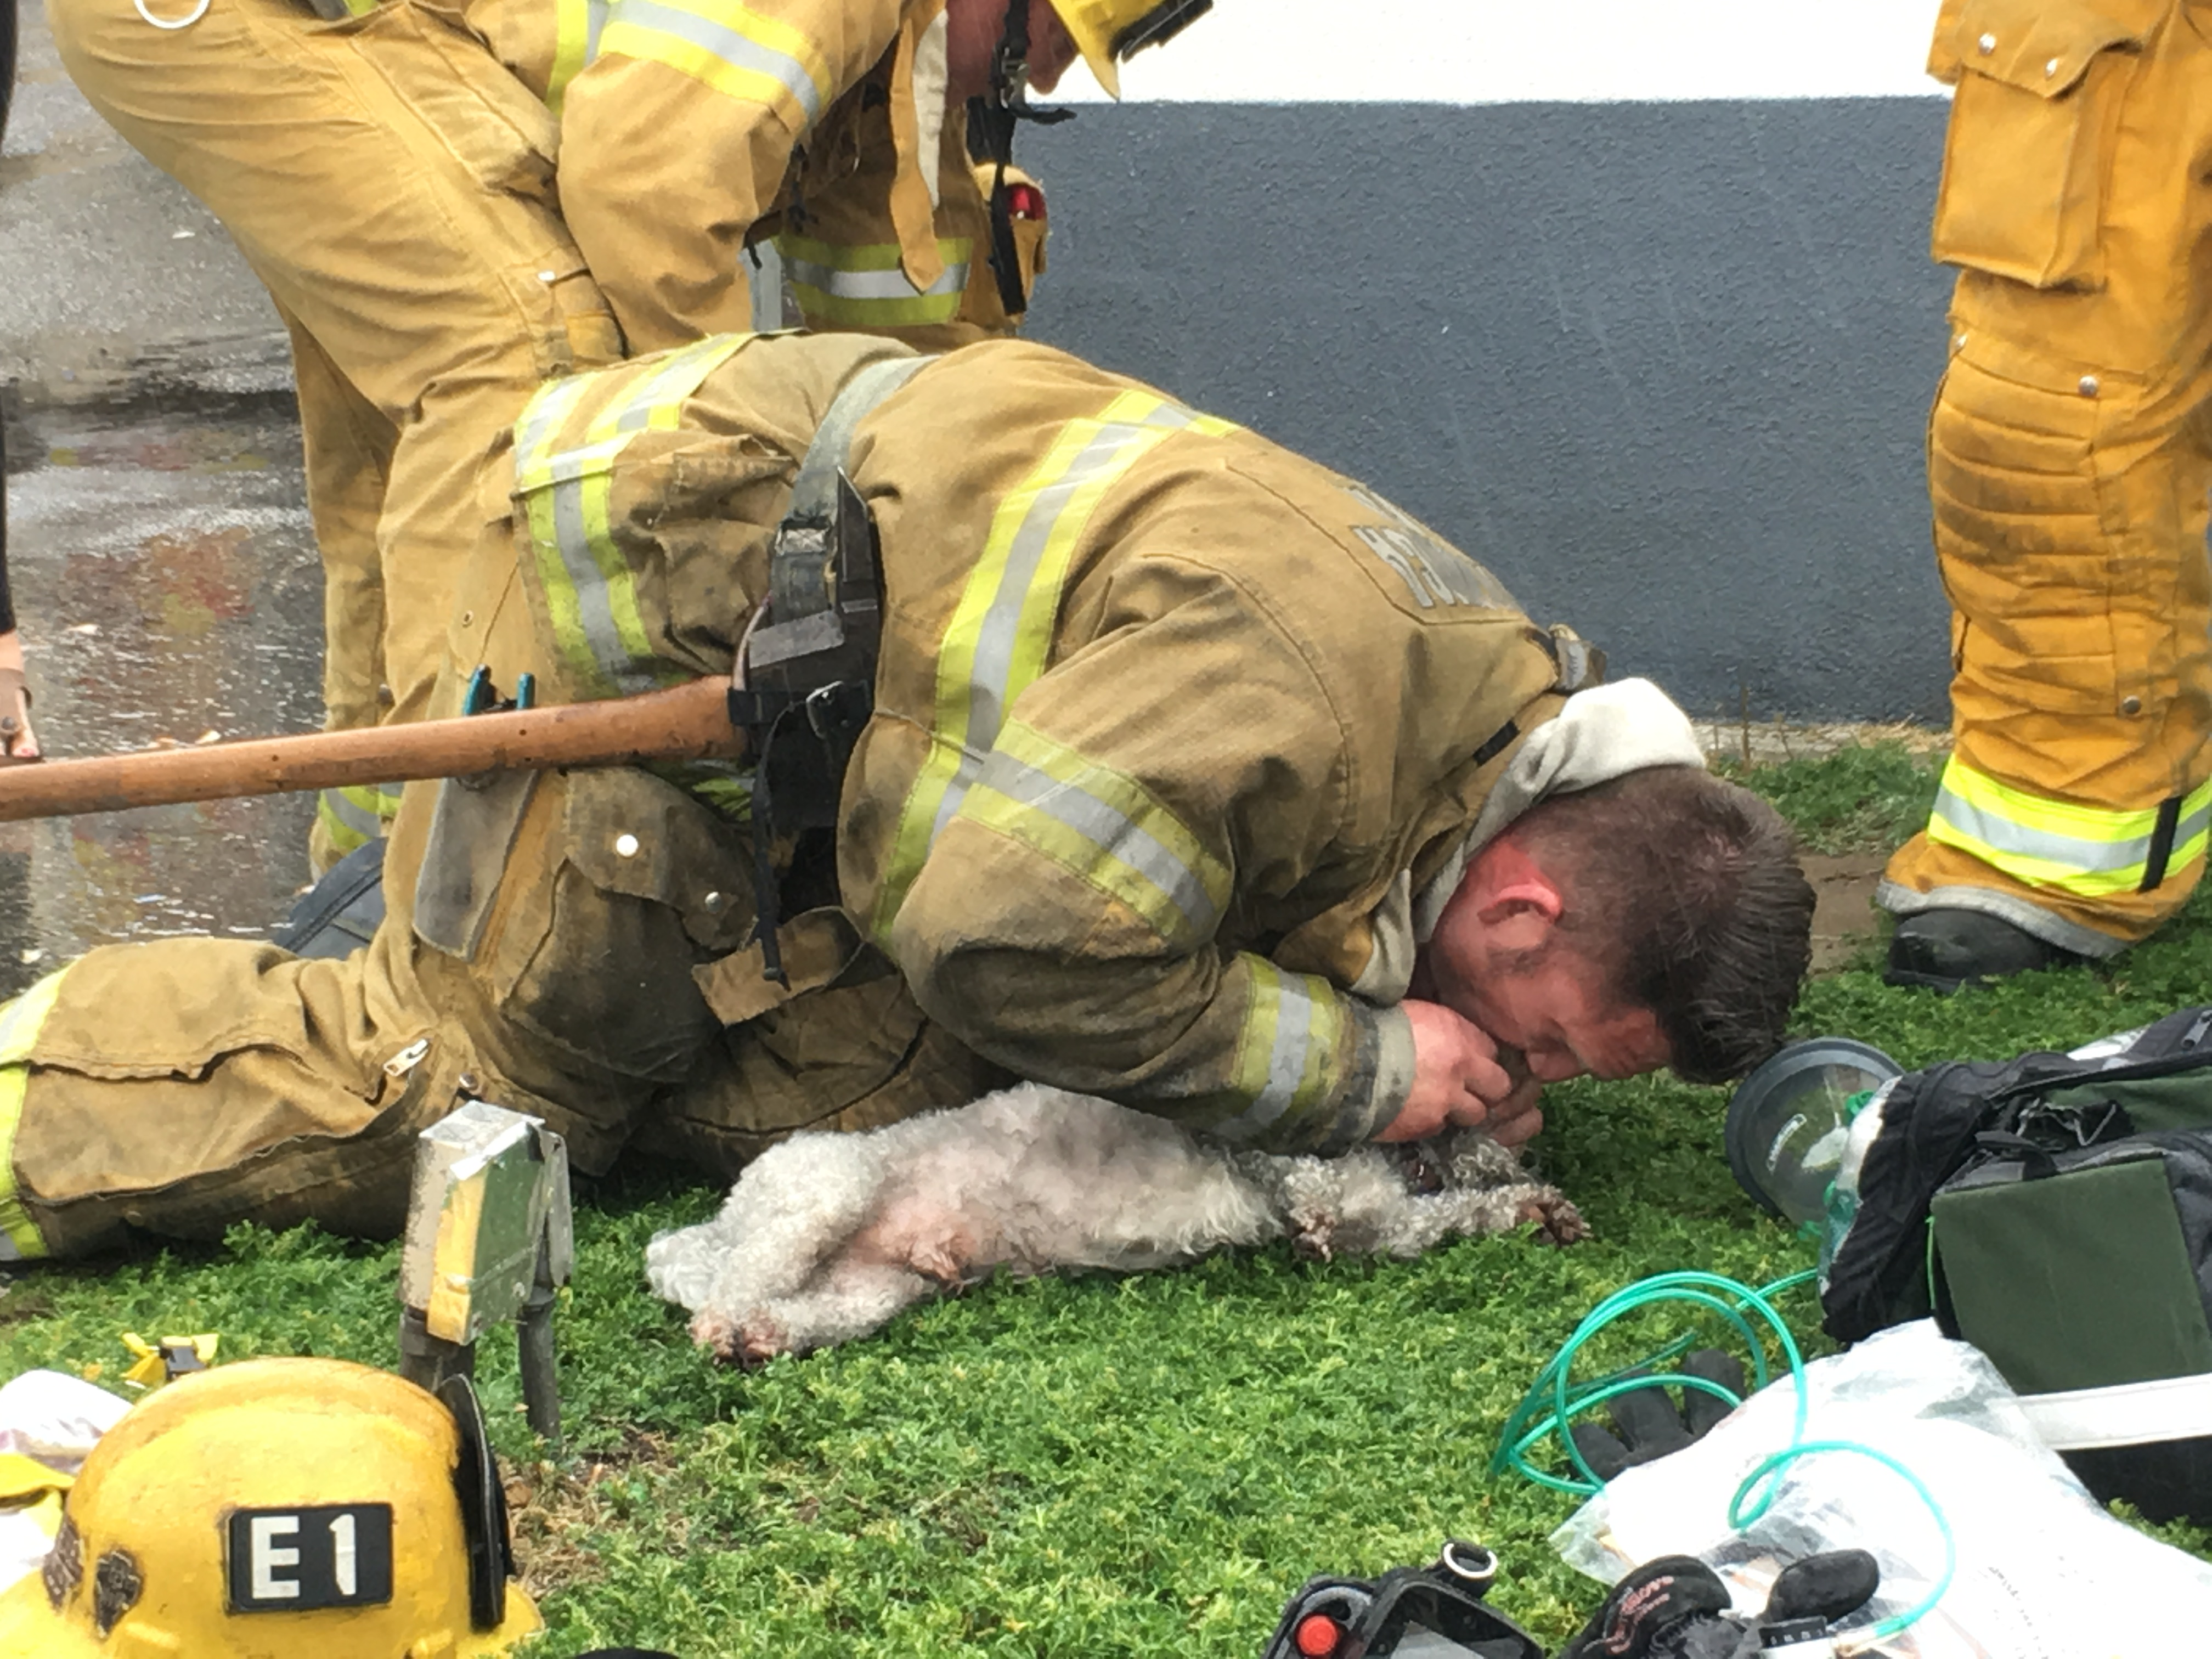 A Santa Monica firefighter resuscitated a dog after performing CPR on it following an apartment fire.